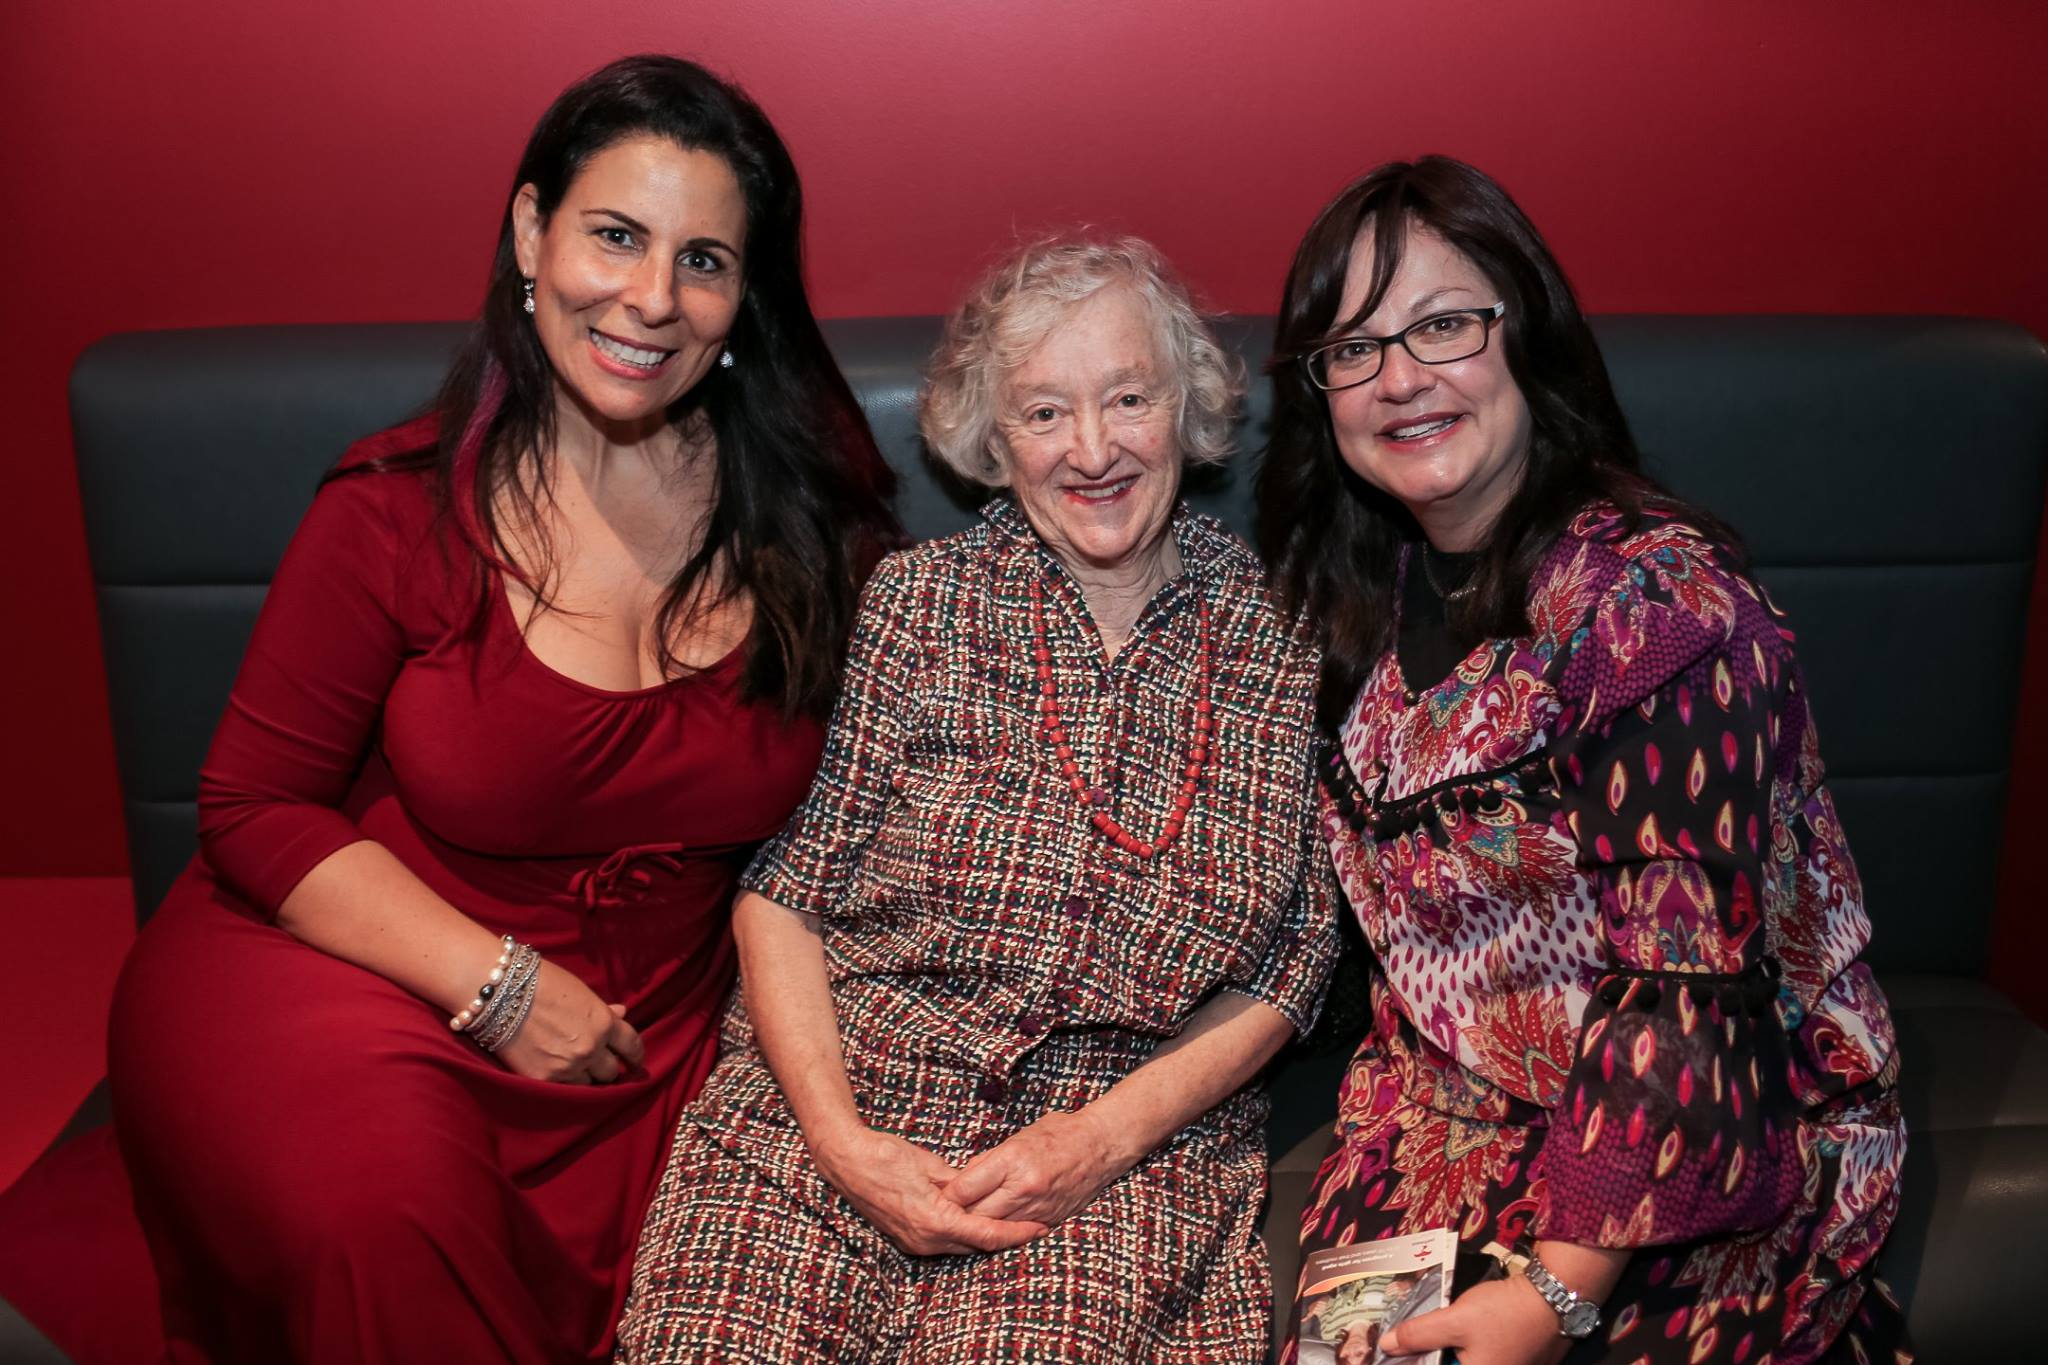 End of the night and still going strong! My 80 year old mother Bev flanked by the luscious Esther Labi, founder of Storm in a D Cup and Laya Slavin from Our Big Kitchen.